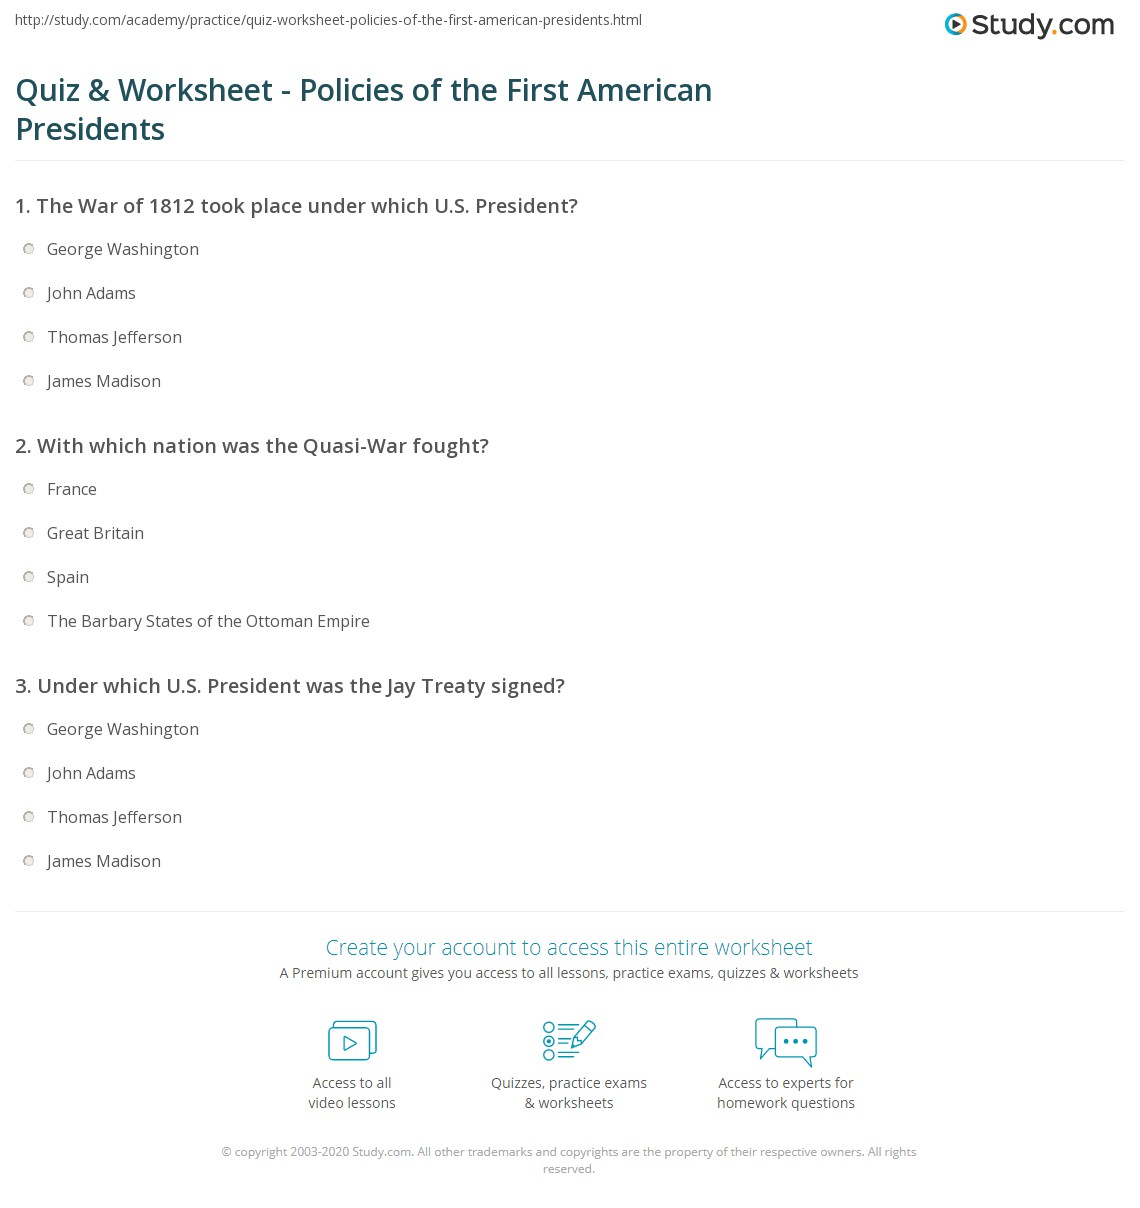 Quiz & Worksheet - Policies of the First American Presidents | Study.com